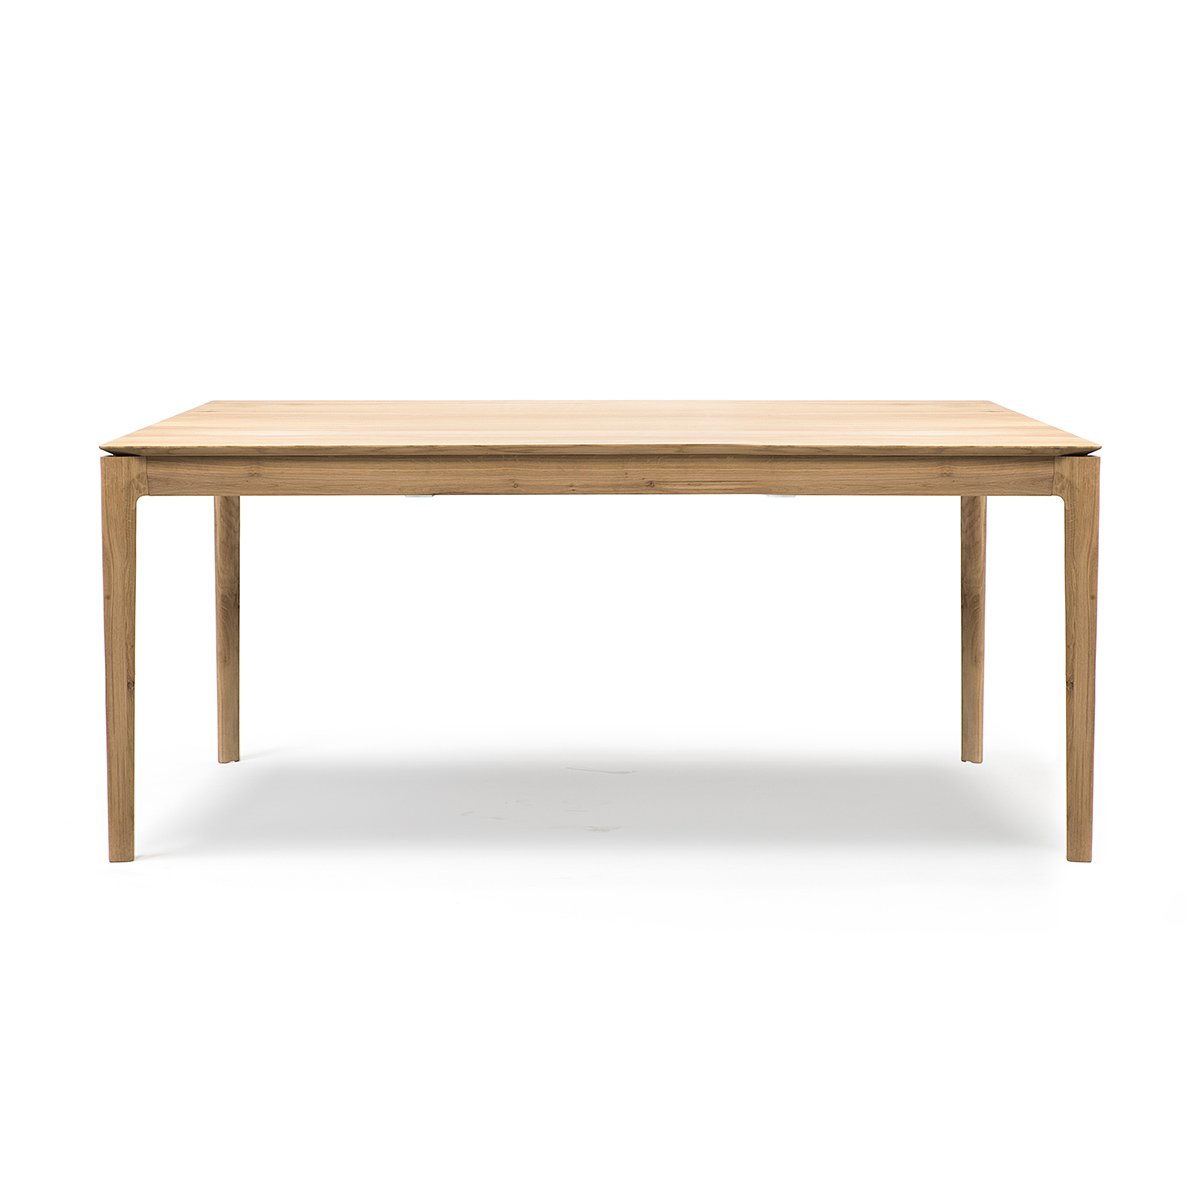 Bok Extension Dining Table by Ethnicraft